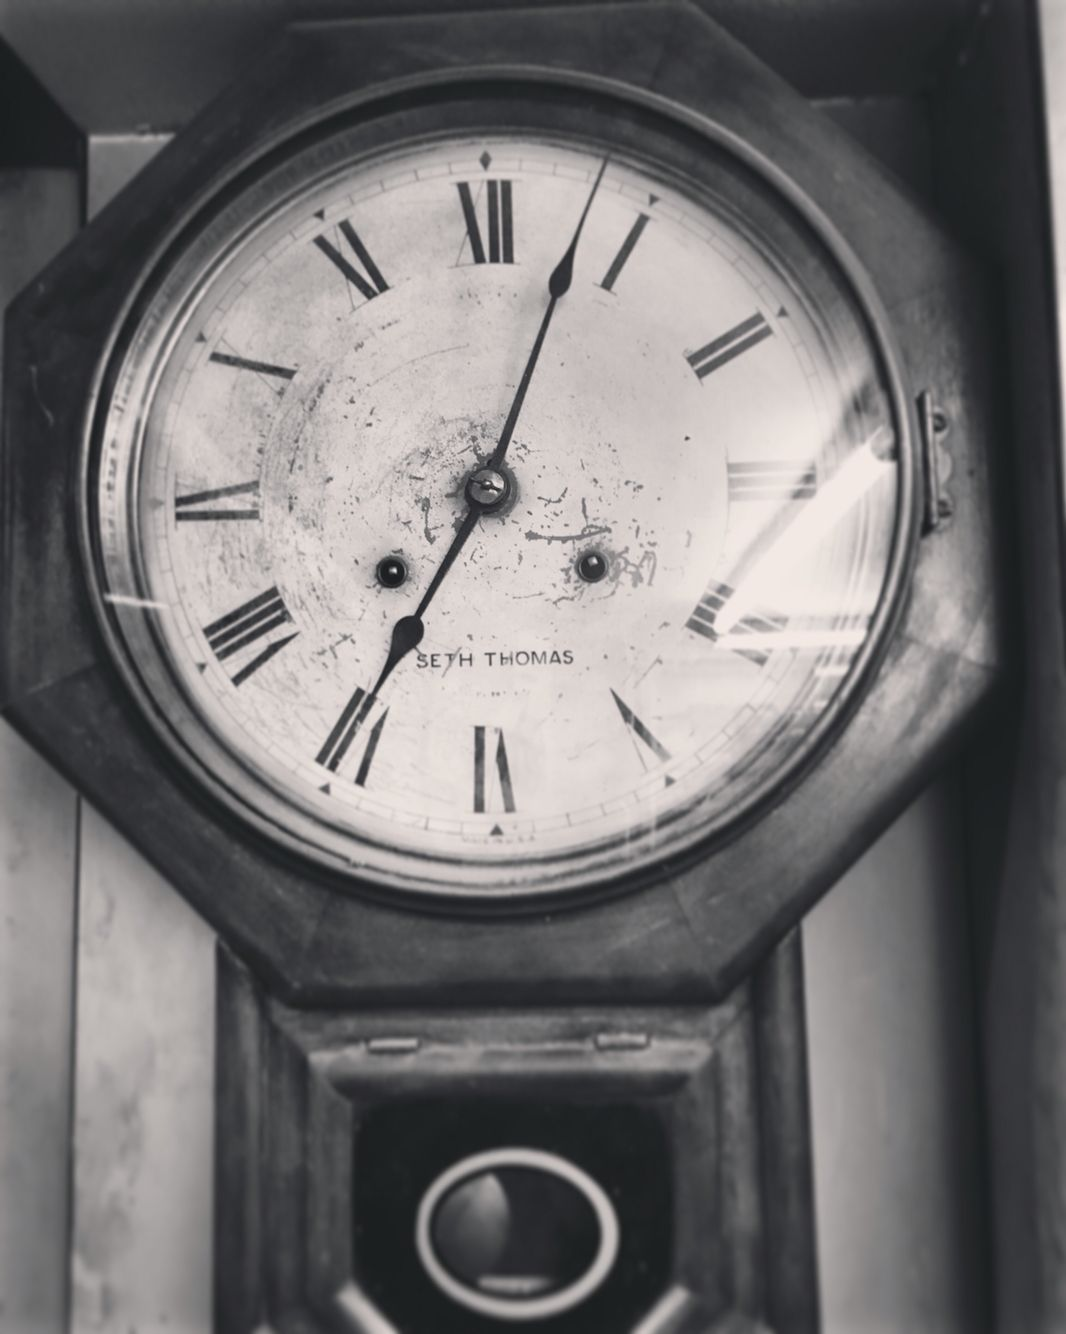 100 Years Old Wall Clock Very Rare To Find Seen In A Sweet Shop Old Wall Clock Wall Clock